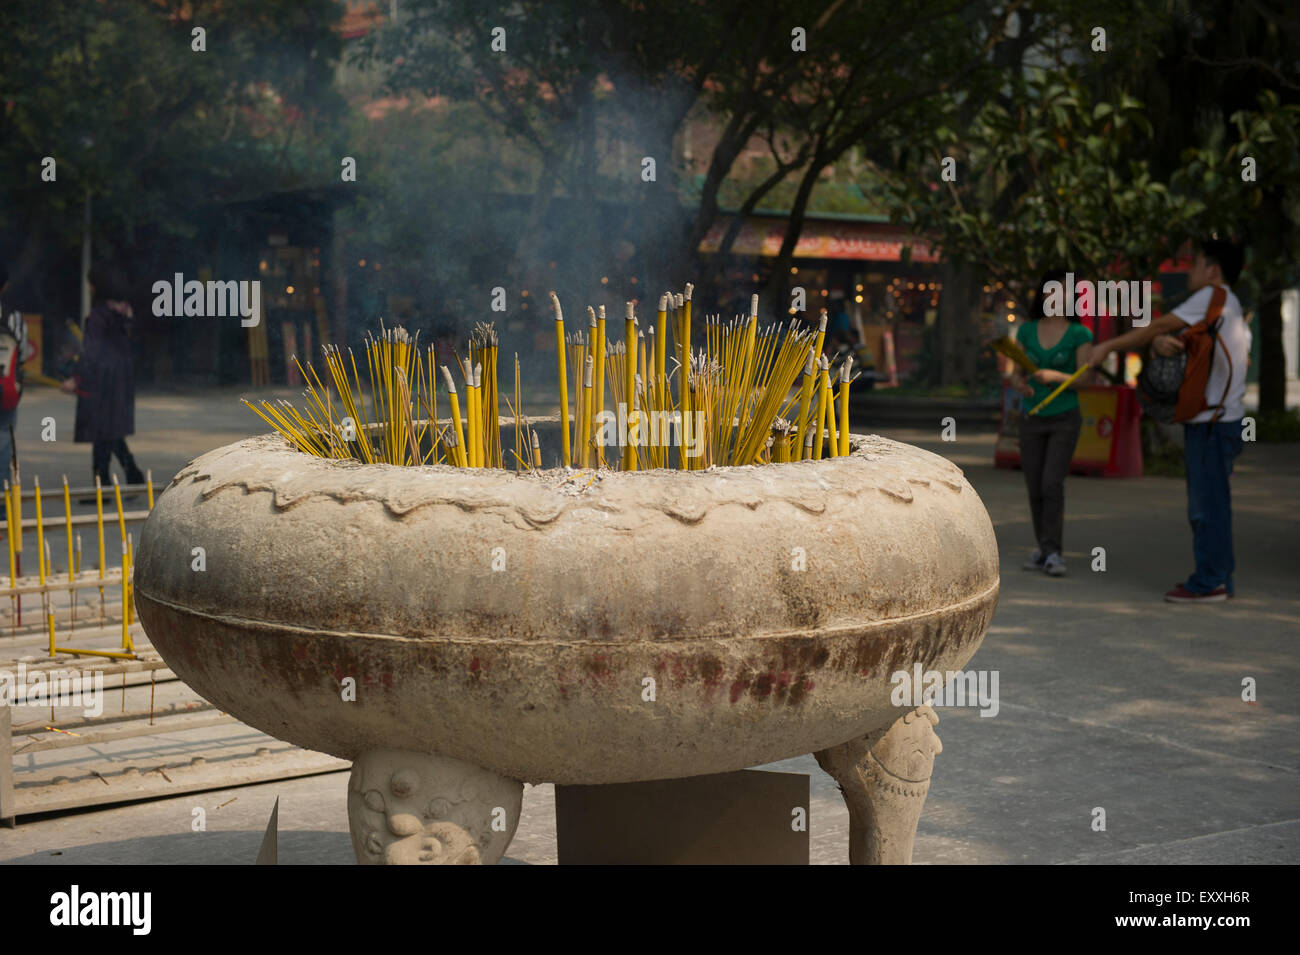 Buddhist ritual of Incense offerings placed in a censer at the entrance of Po LIn Monastery, Ngong Ping Plateau, - Stock Image